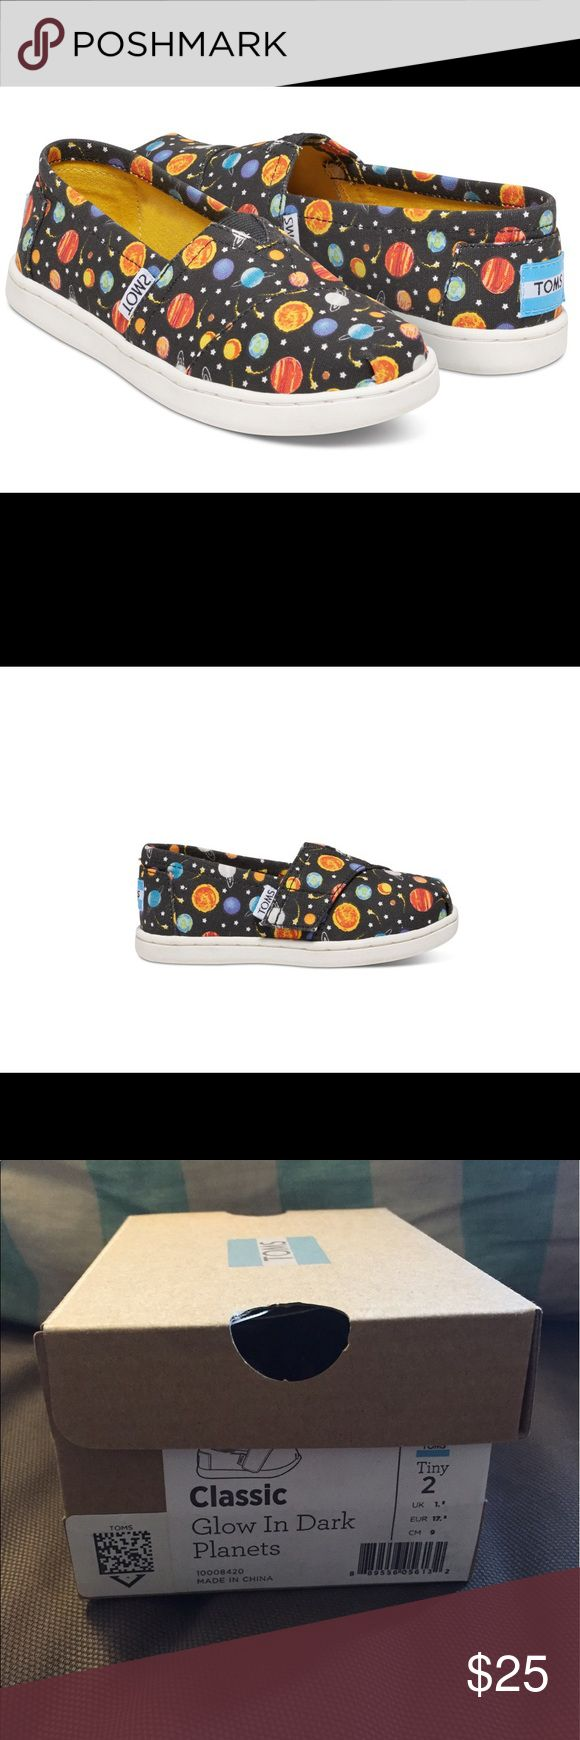 NWT Glow in the dark planets tiny Toms Brand New! Never worn, still in box with tags attached. The most adorable planet Tiny Toms. They are glow in the dark. Size 2. No longer available on Toms website, so get them here! 😊 TOMS Shoes Baby & Walker